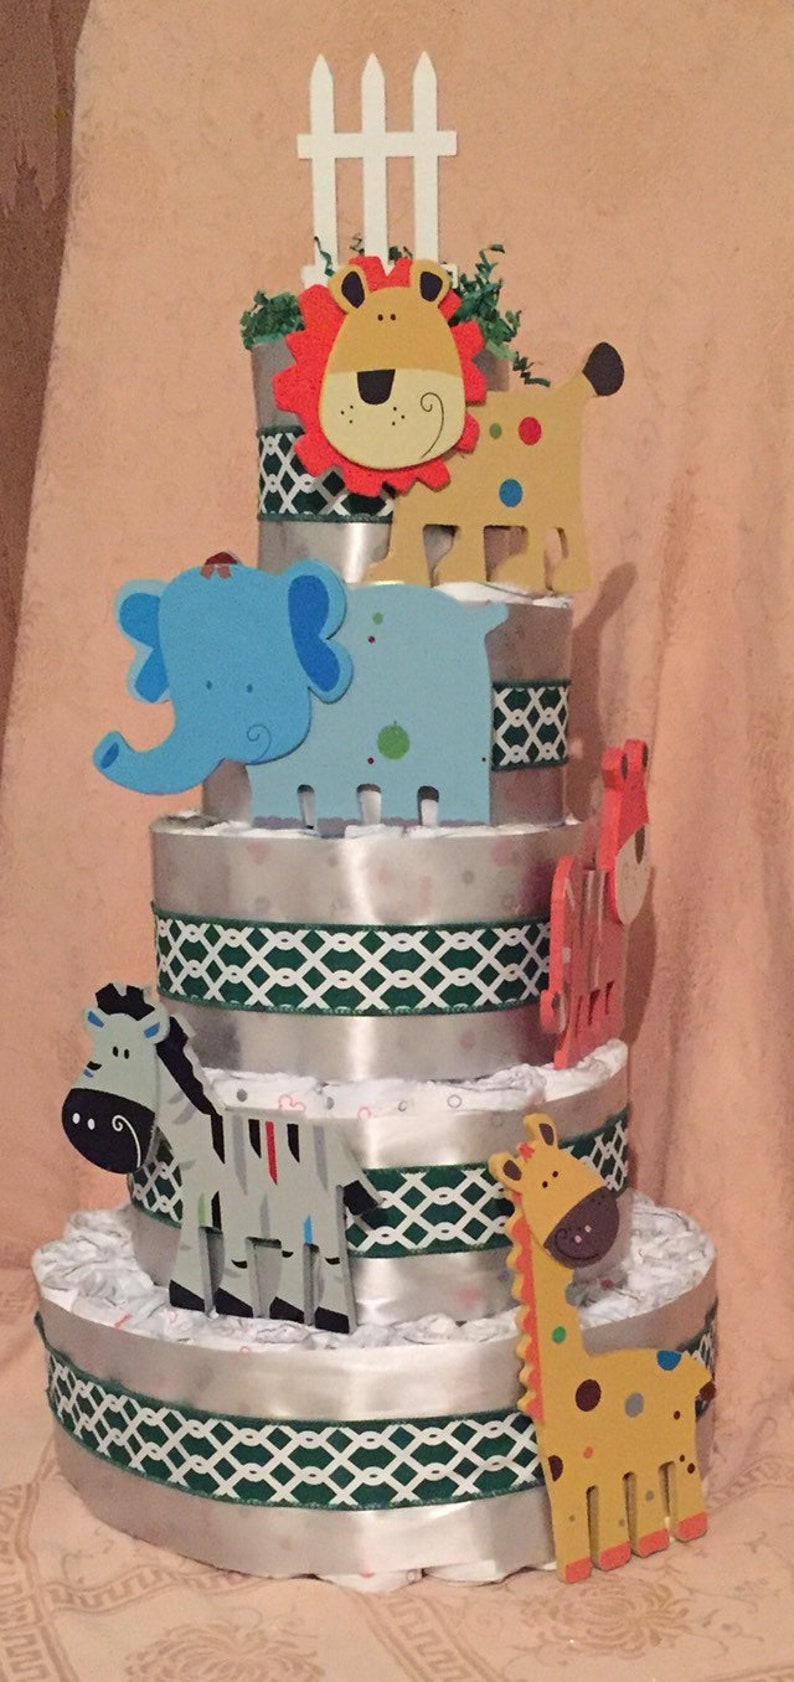 5 Tier Extra Large Jungle Zoo Animals Diaper Cake